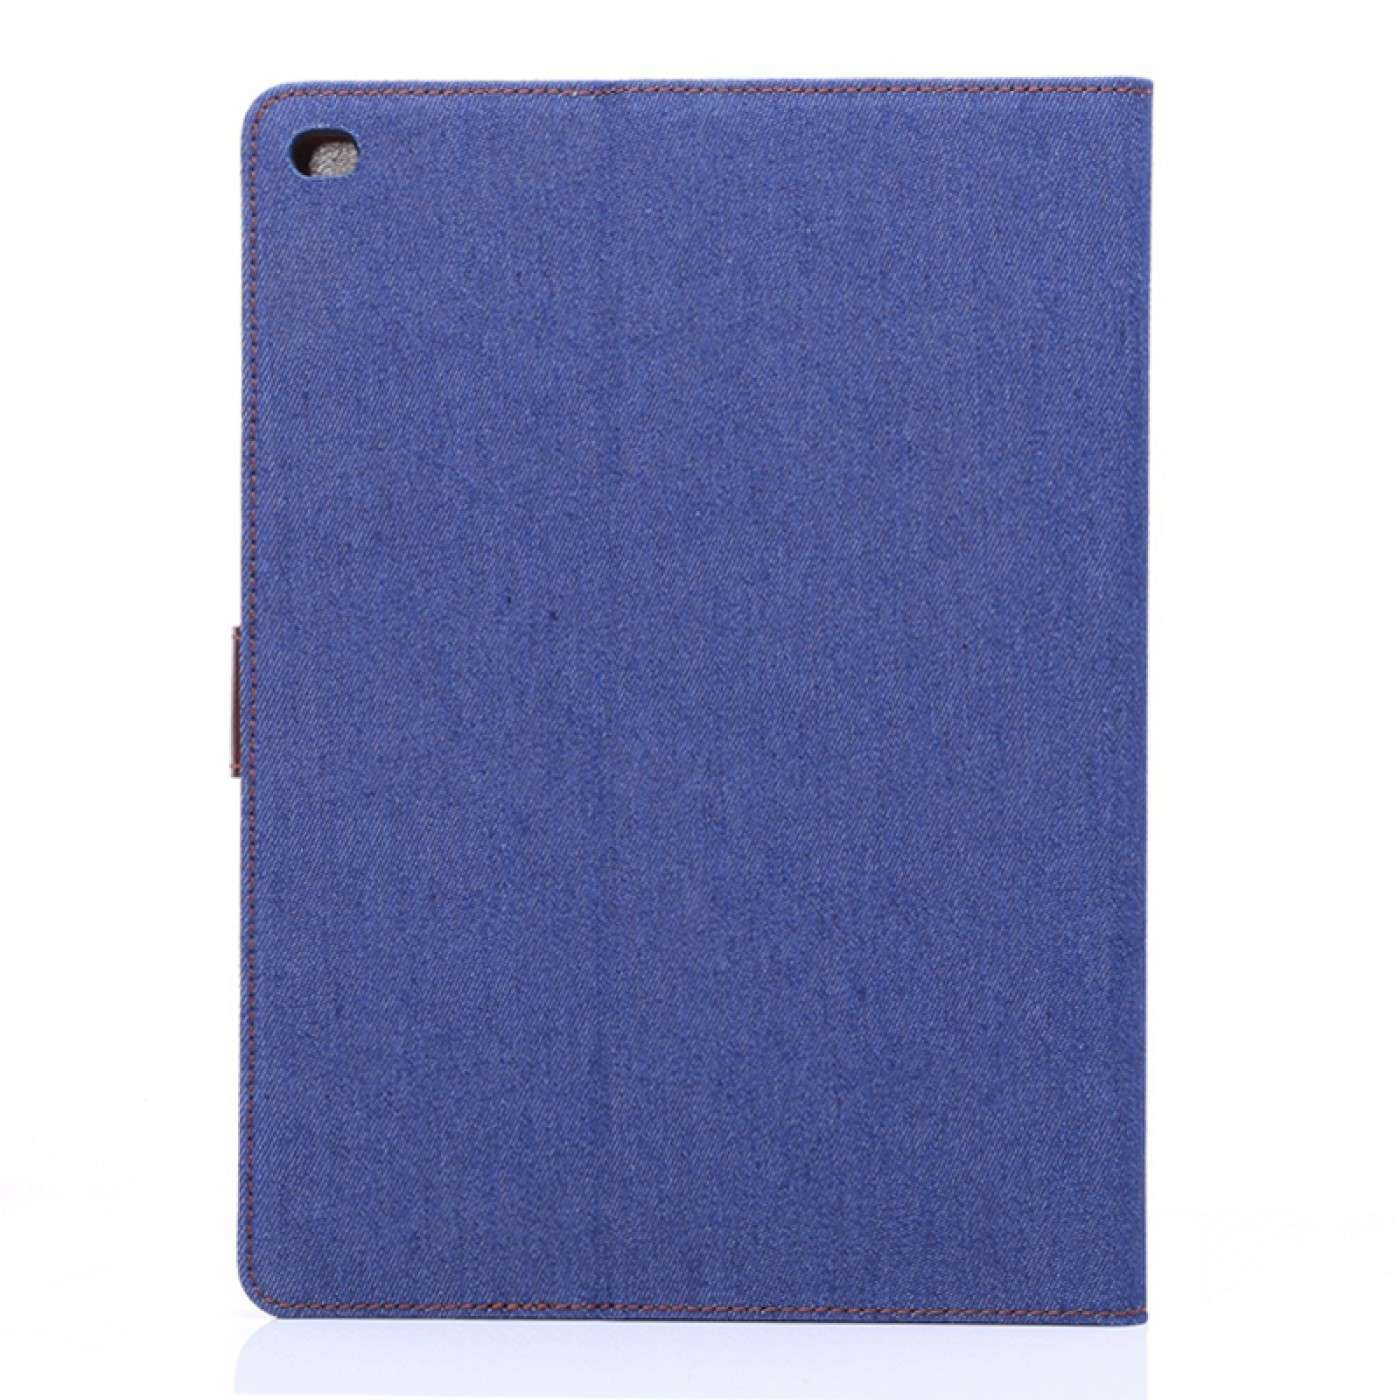 fourre ipad air 2 flip jeans bleu fonc. Black Bedroom Furniture Sets. Home Design Ideas